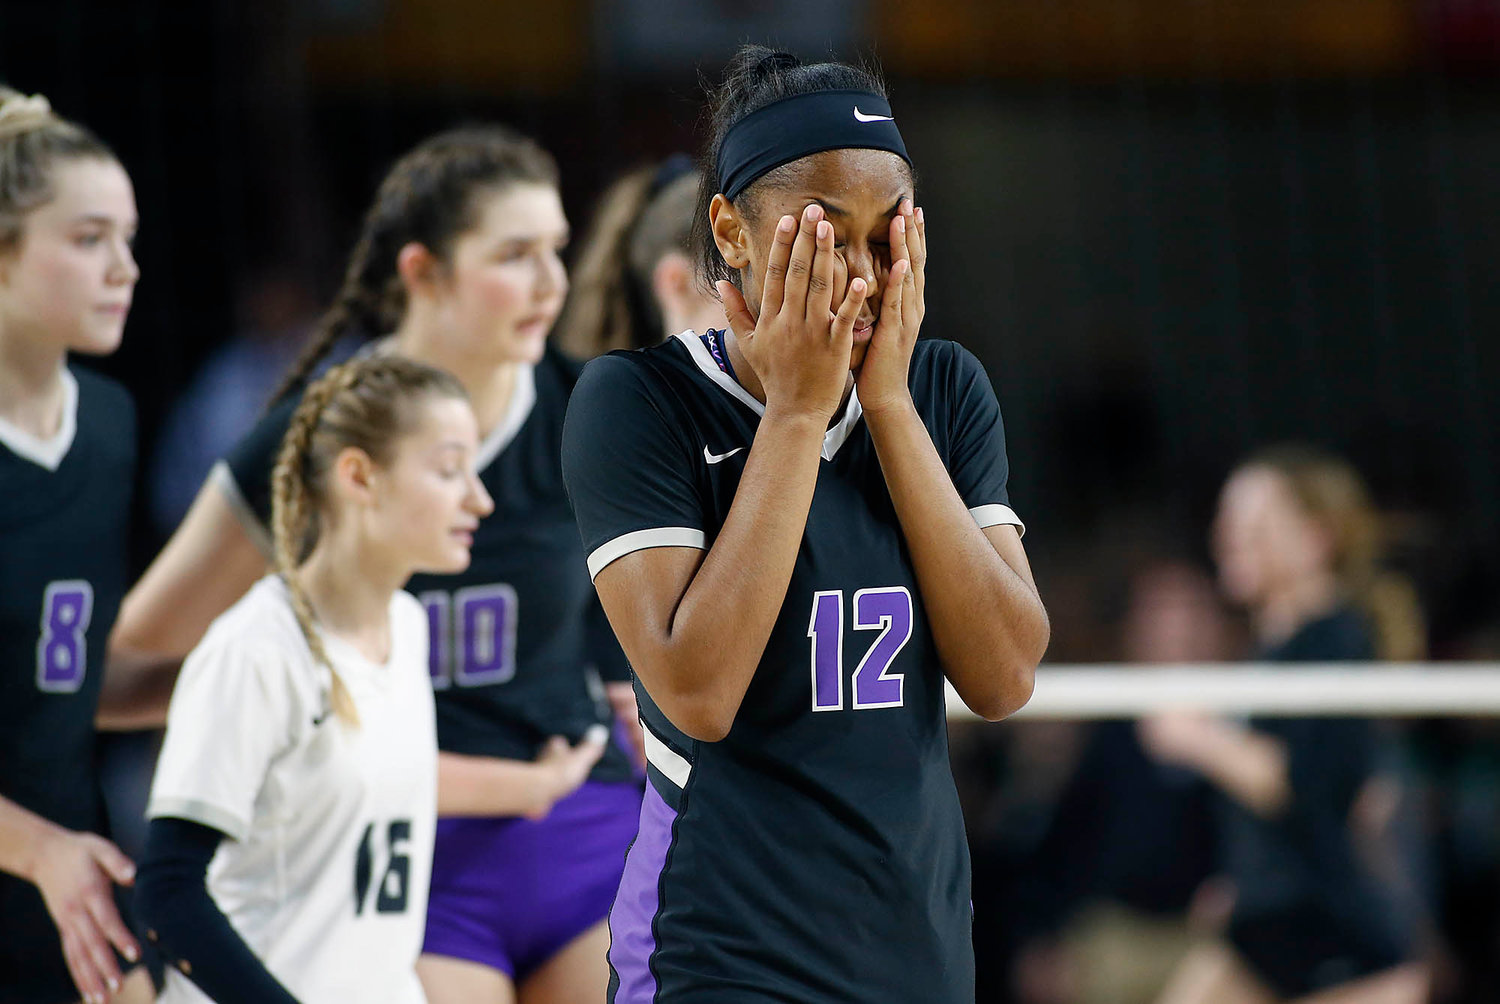 Millennium freshman outside hitter Eryn Jones (12) reacts after losing to Sunnyslope's during the girls 5A state volleyball championship on the ASU campus in Tempe on Tuesday, Nov. 12.